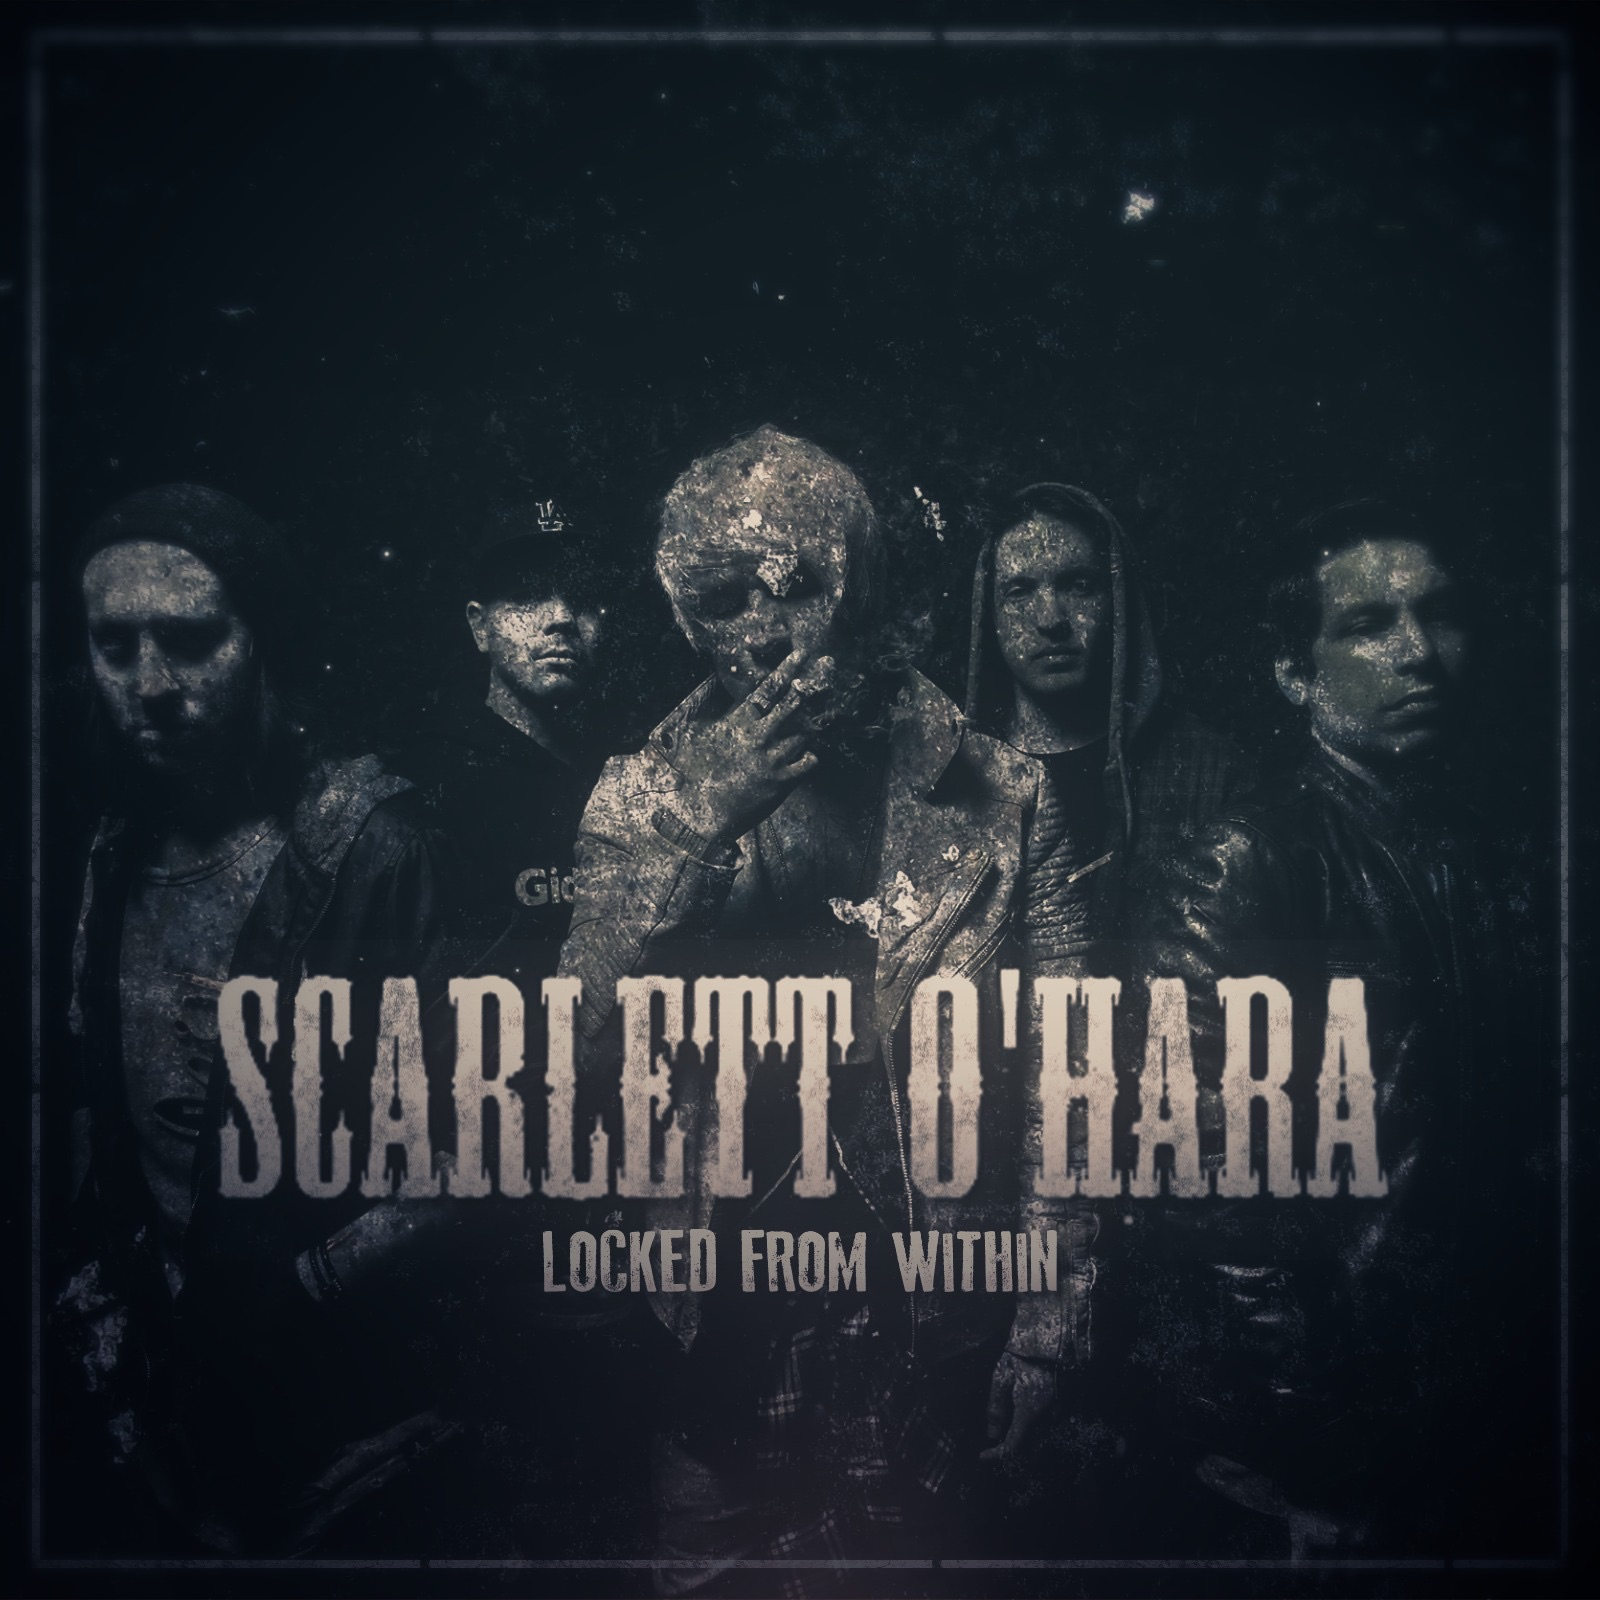 Scarlett O'Hara - Locked from Within [single] (2017)